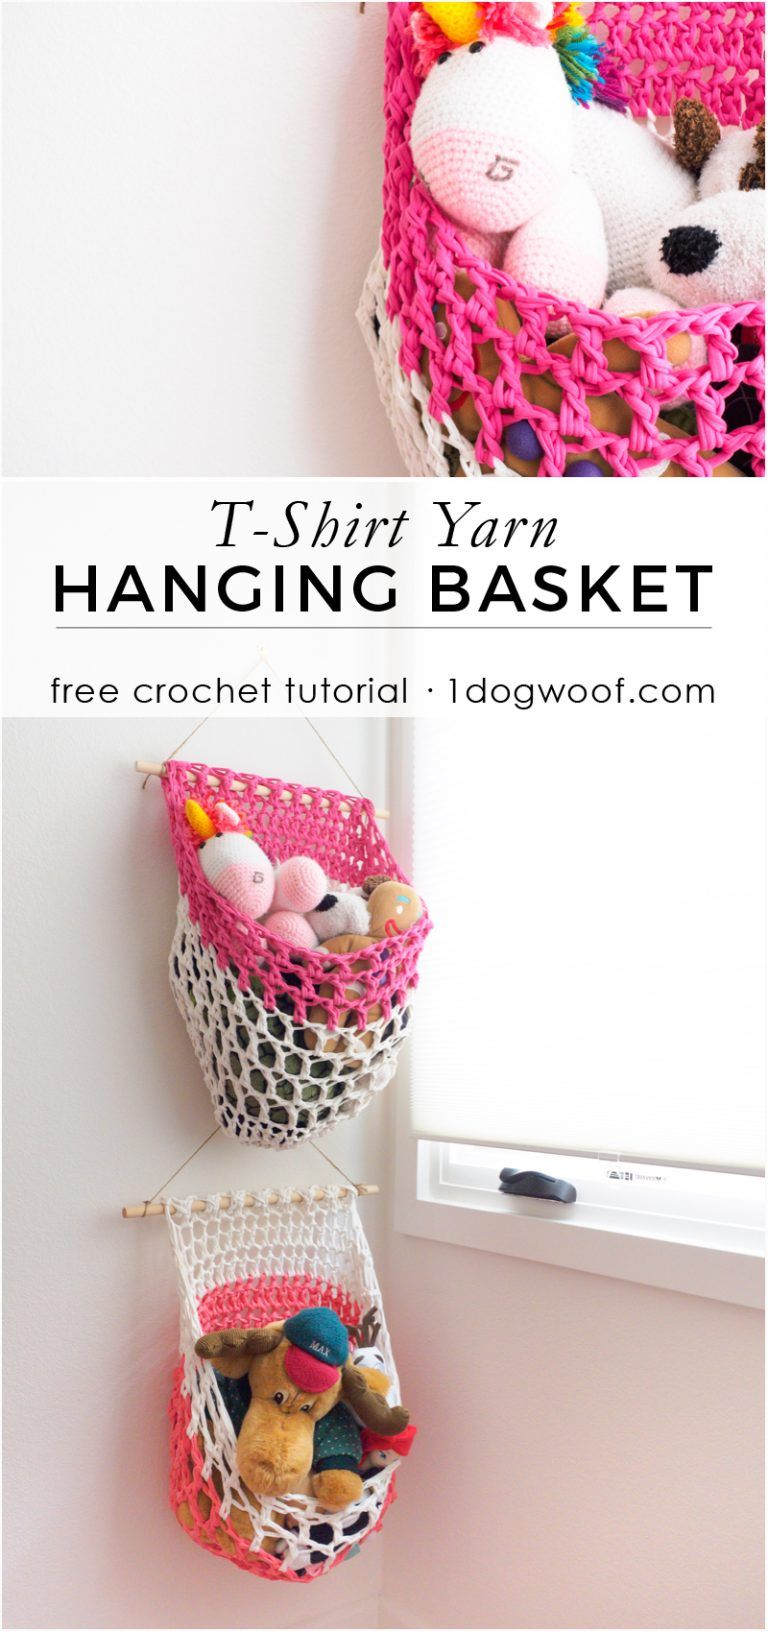 T-Shirt Yarn Hanging Basket Crochet Pattern | Fabric yarn, Mesh ...